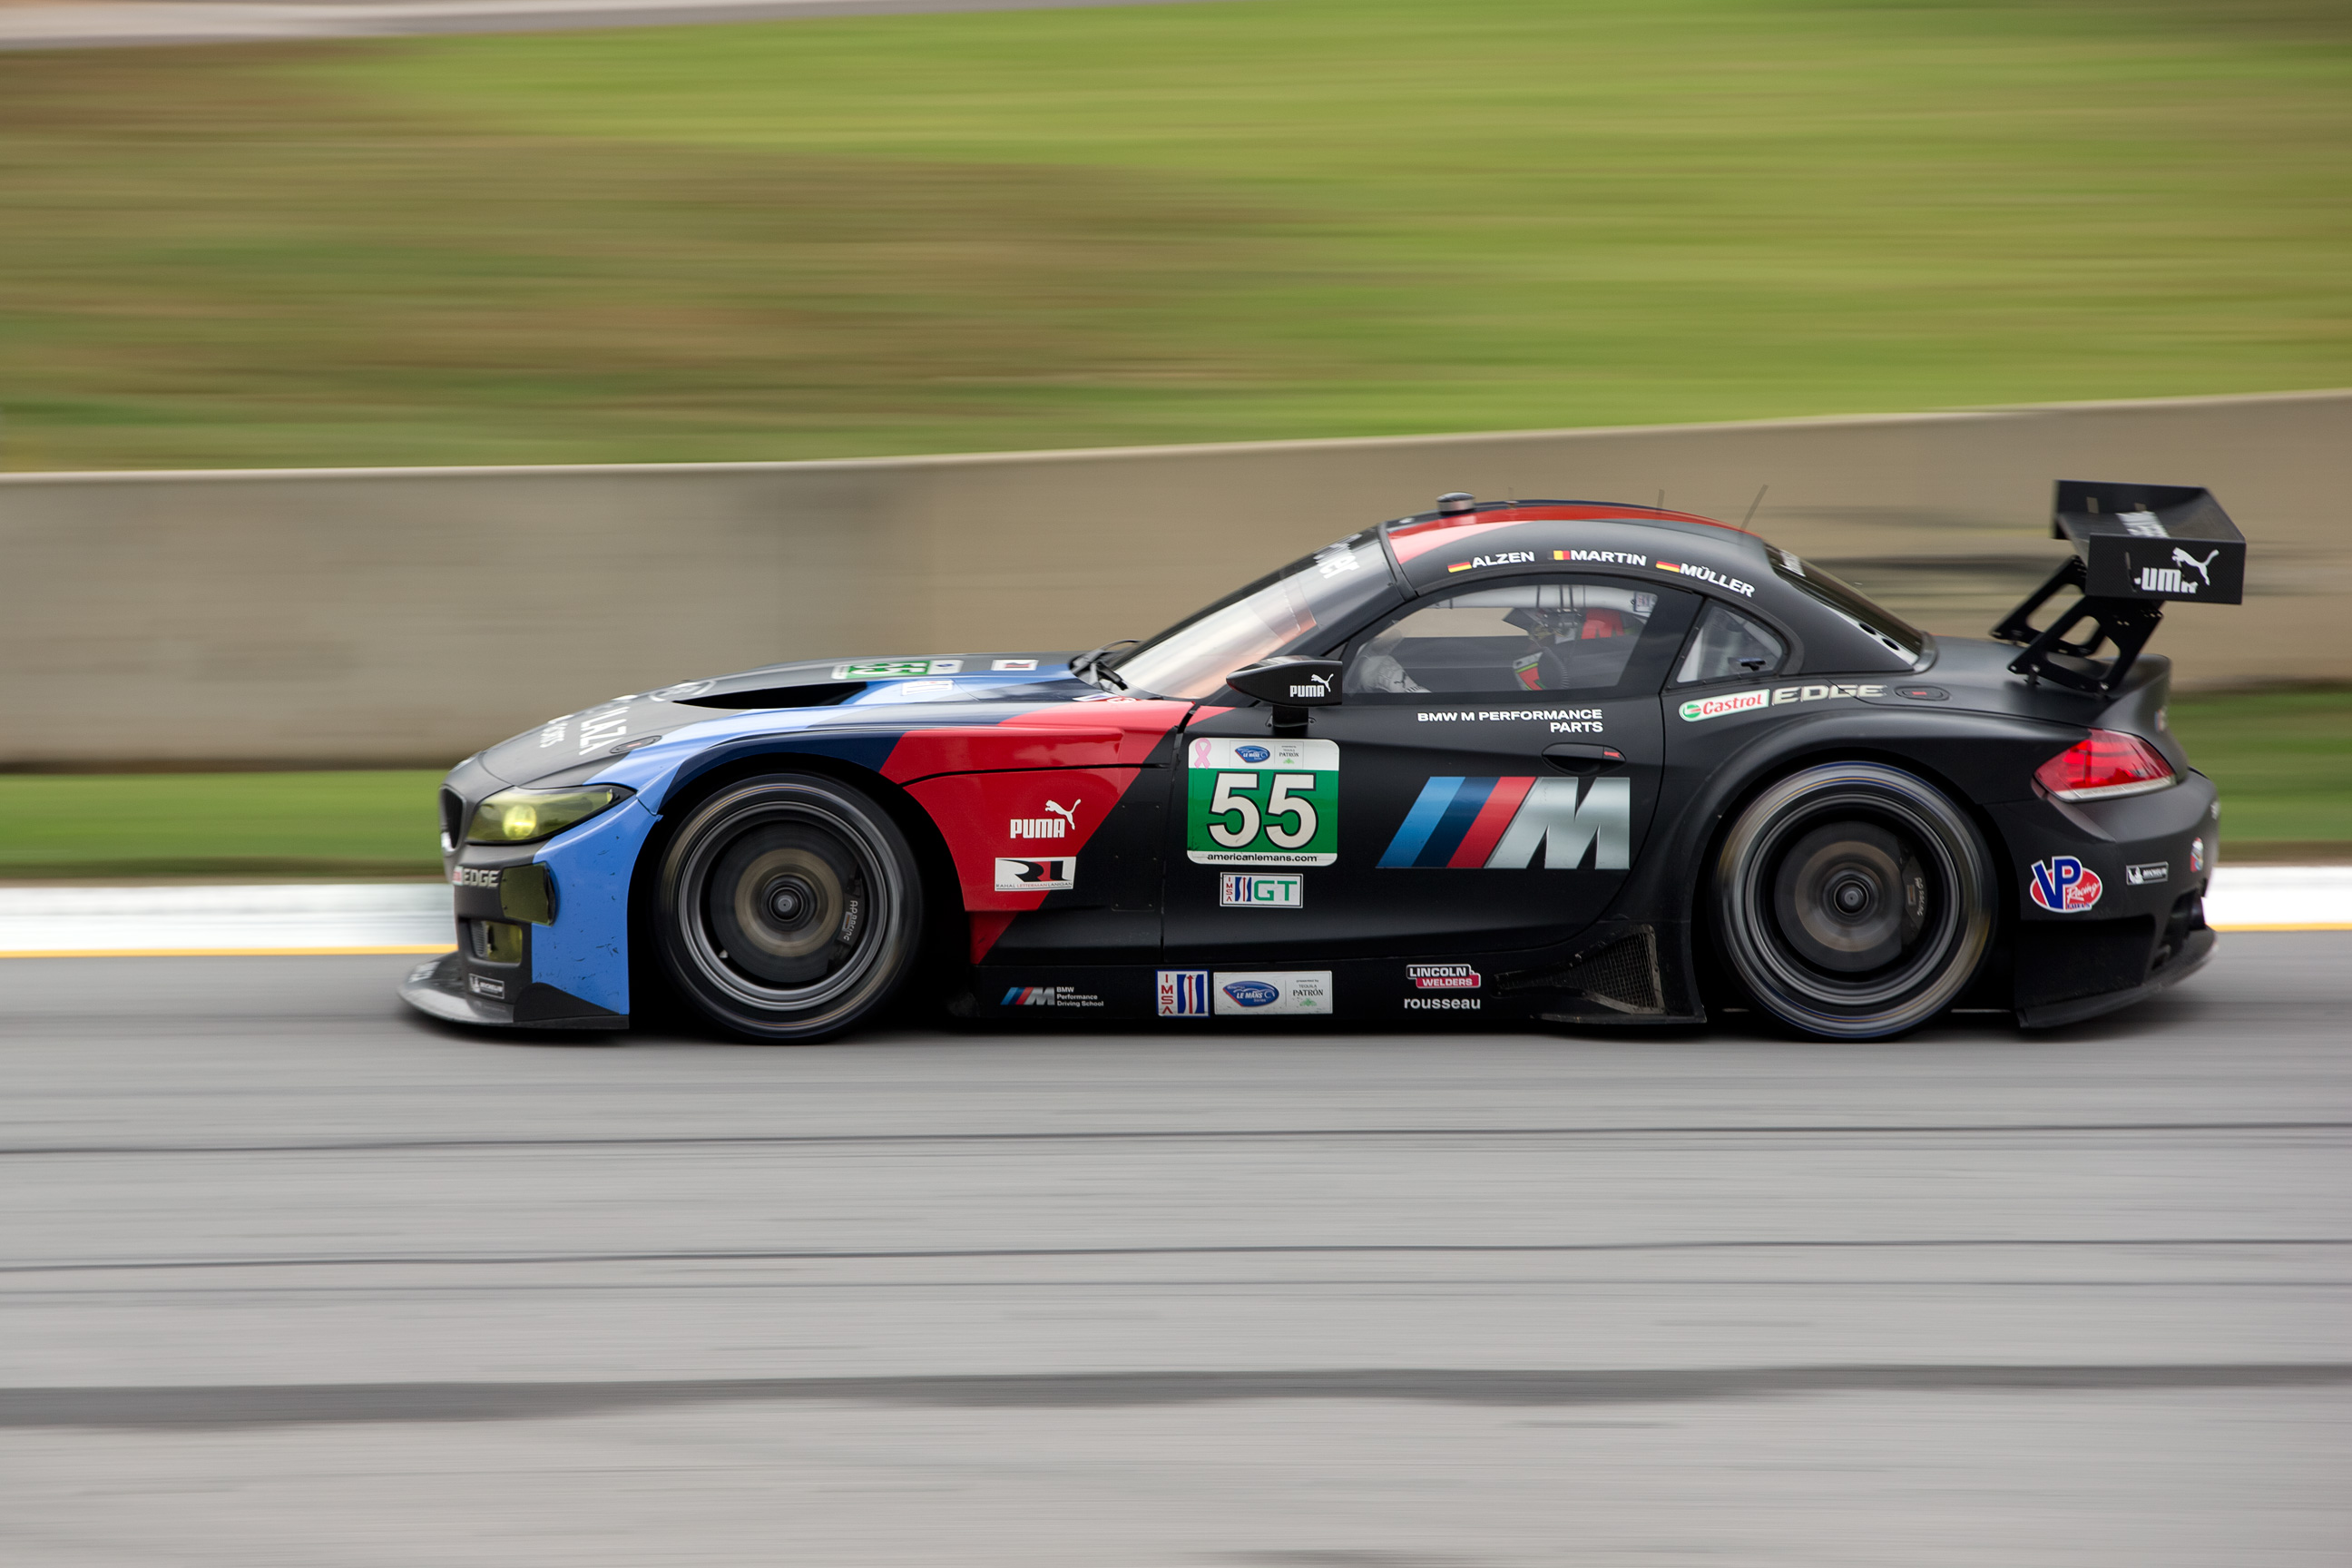 BMW Team RLL Prepares for the 12 Hours of Sebring - BimmerFile